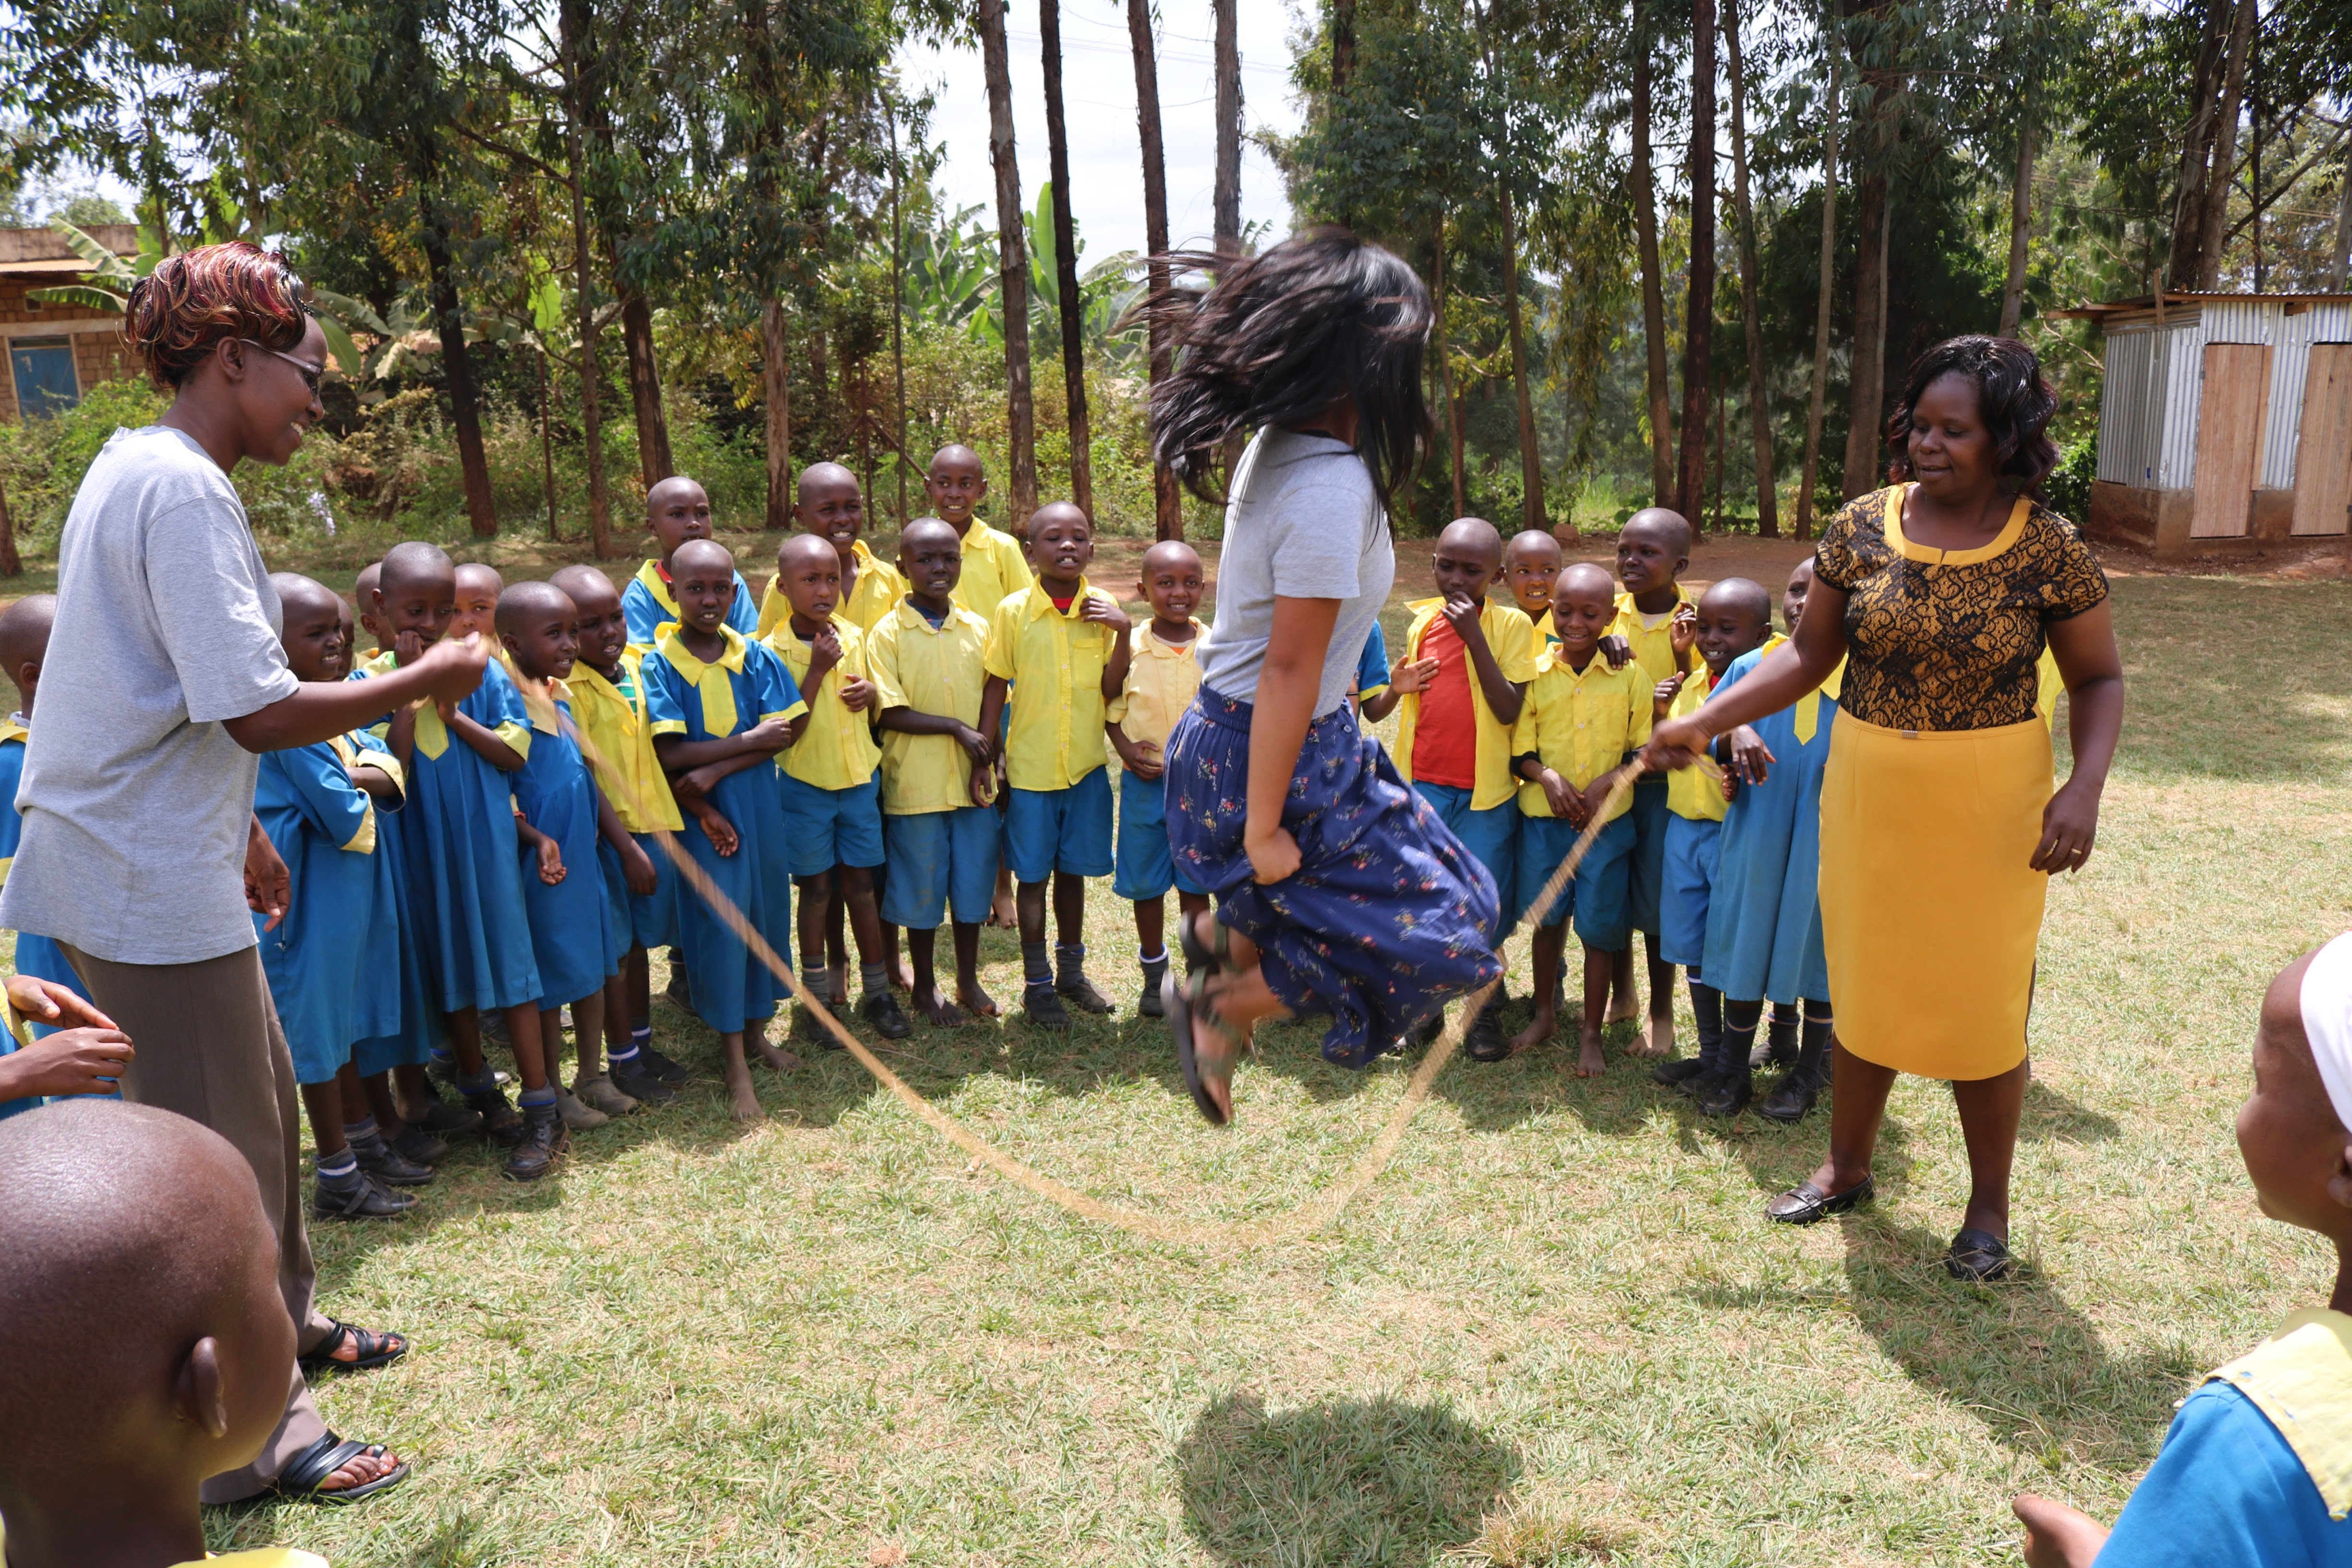 Jenny Smith jump-roping while Kenyan children watch and sing a rhyme